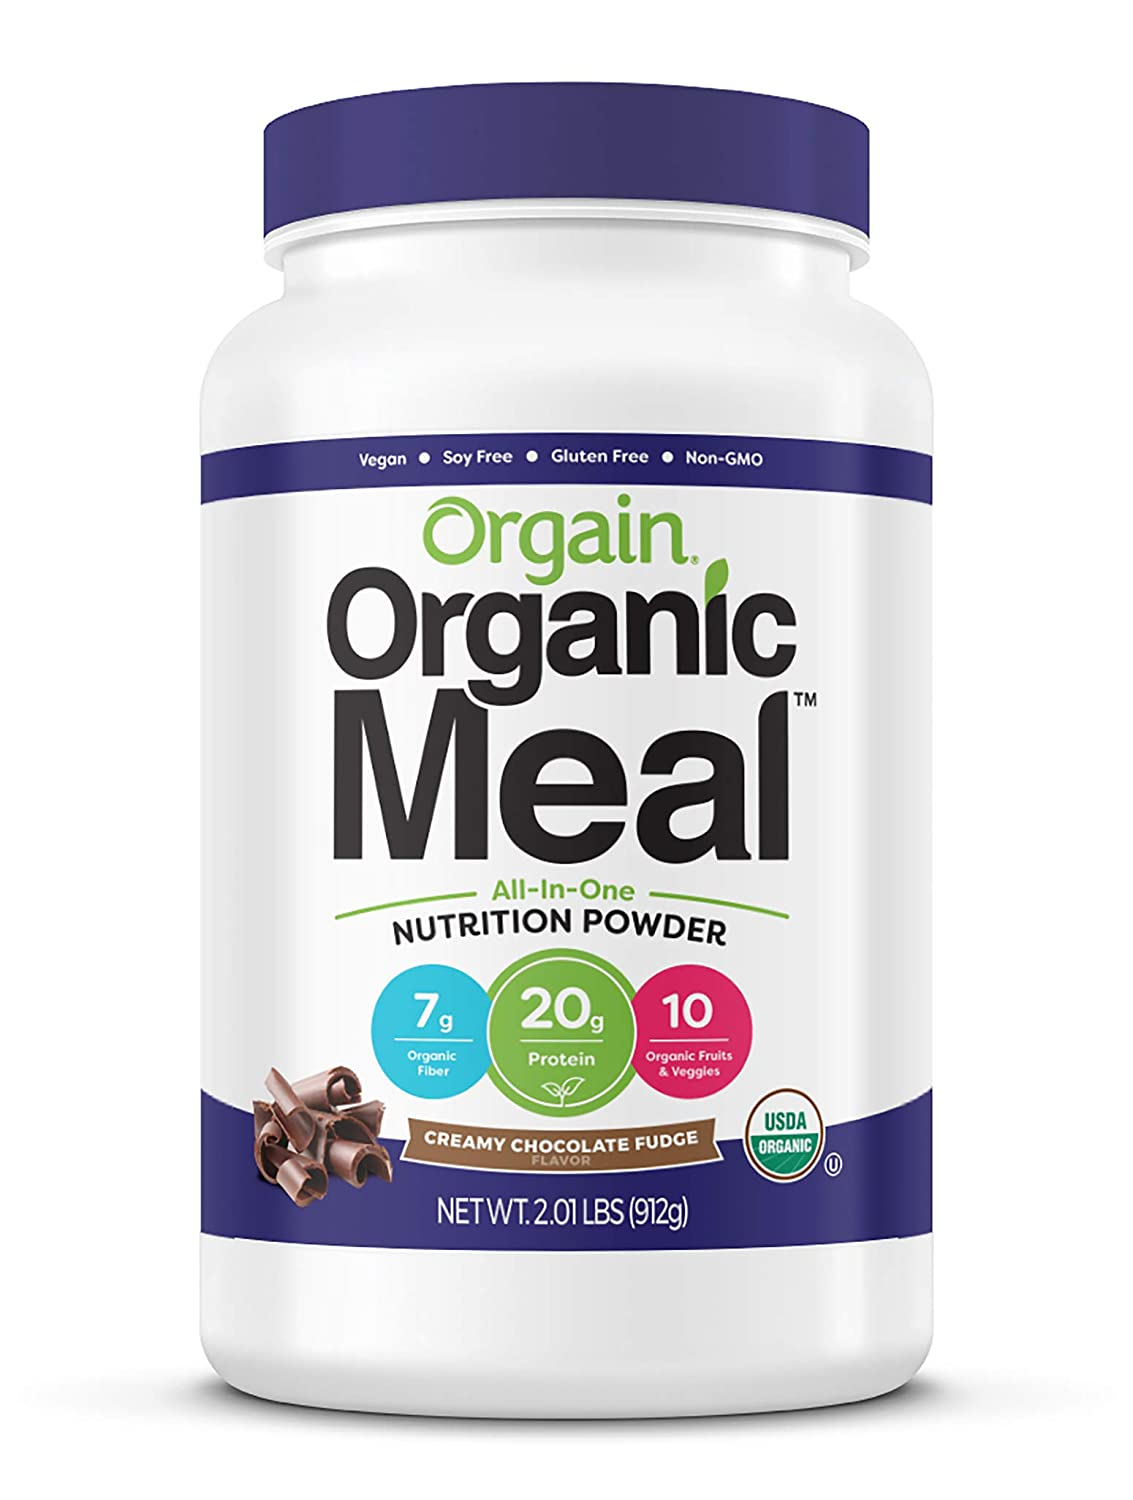 Orgain Organic Plant Based Meal Replacement Powder, Creamy Chocolate Fudge - 20g Protein, Vegan, Dairy Free, Gluten Free, Lactose Free, Kosher, Non-GMO, 2.01 Pound (Packaging May Vary) : Grocery & Gourmet Food